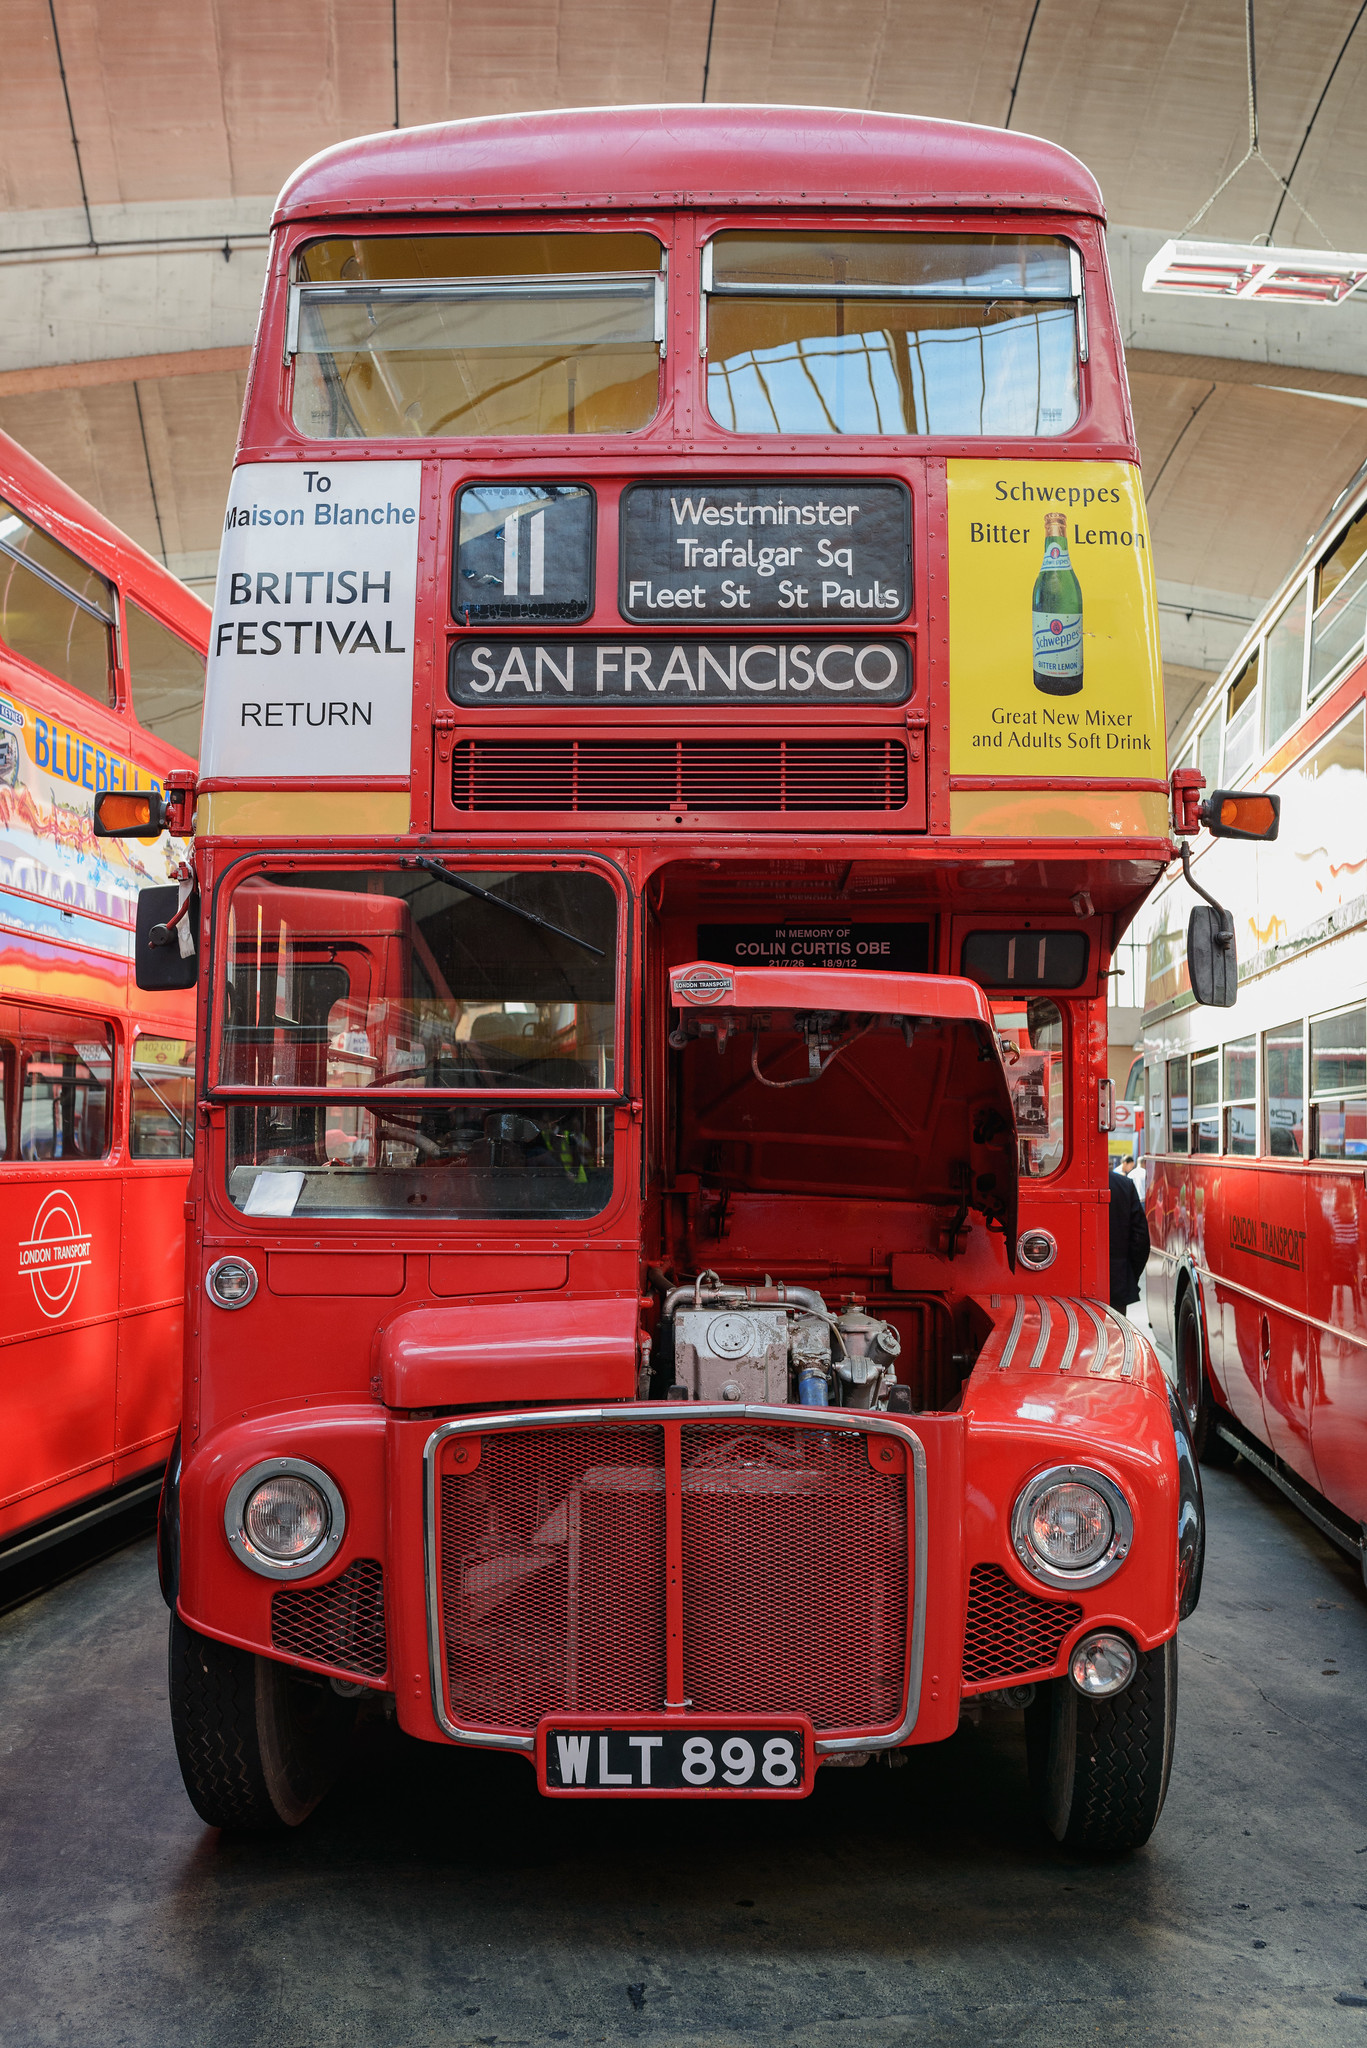 The bus to San Francisco... via Trafalgar Square